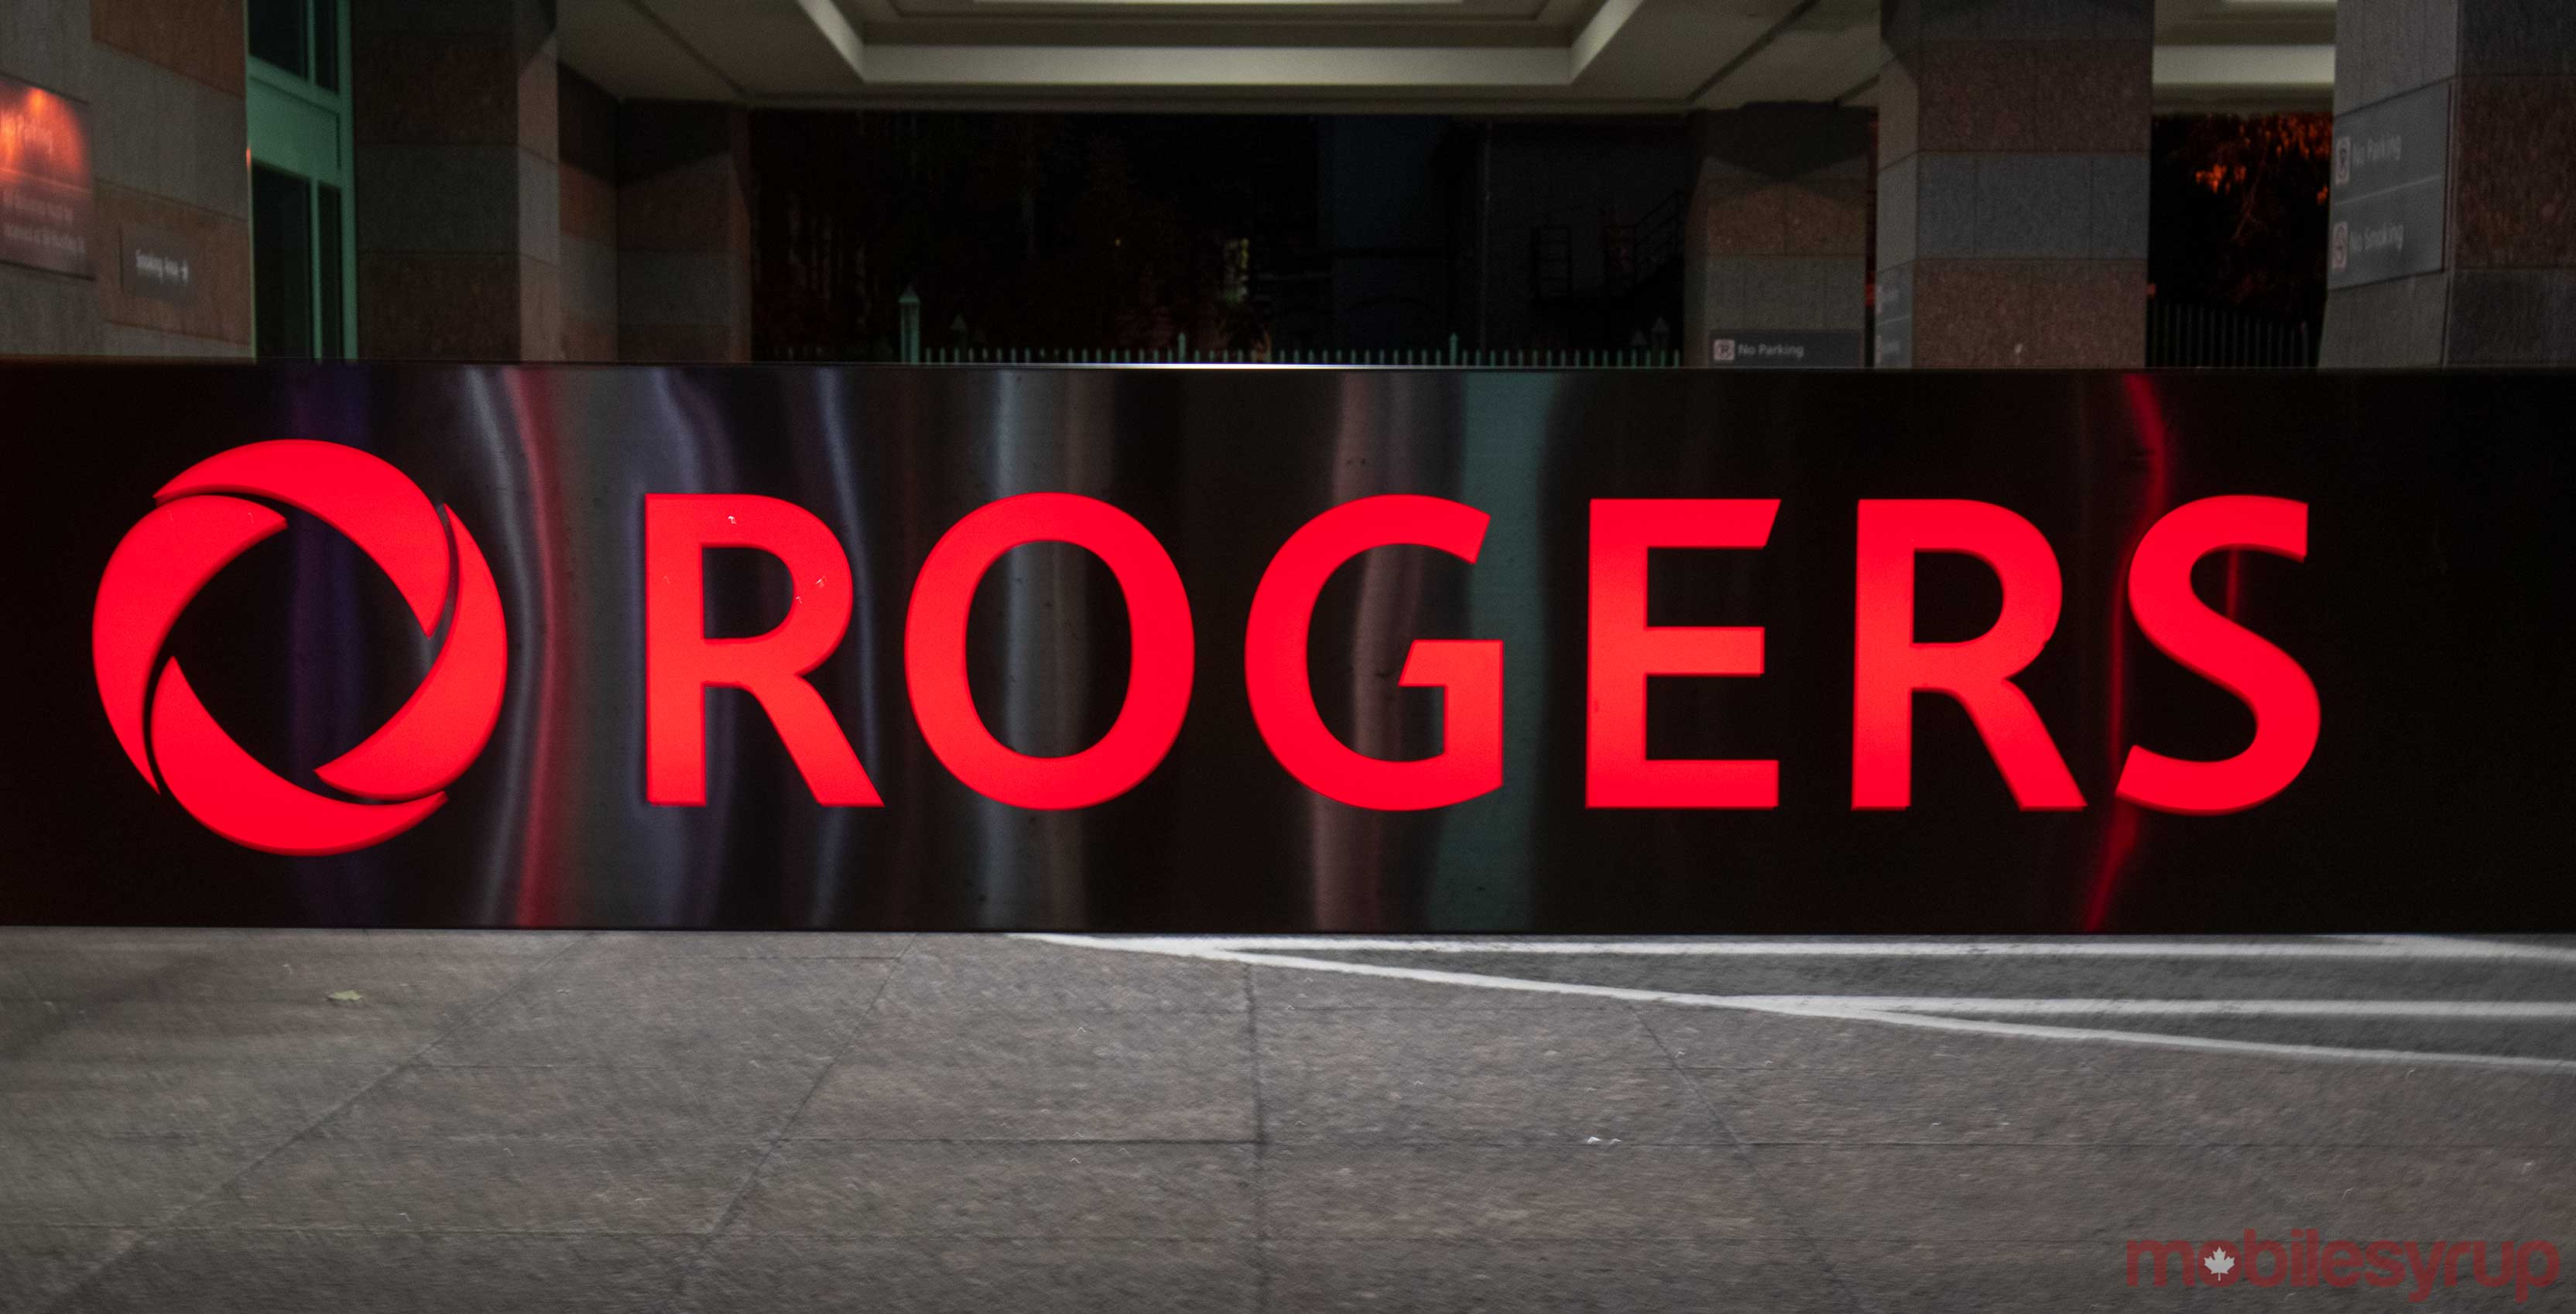 Rogers expected to have 'mixed' results in Q4 2019